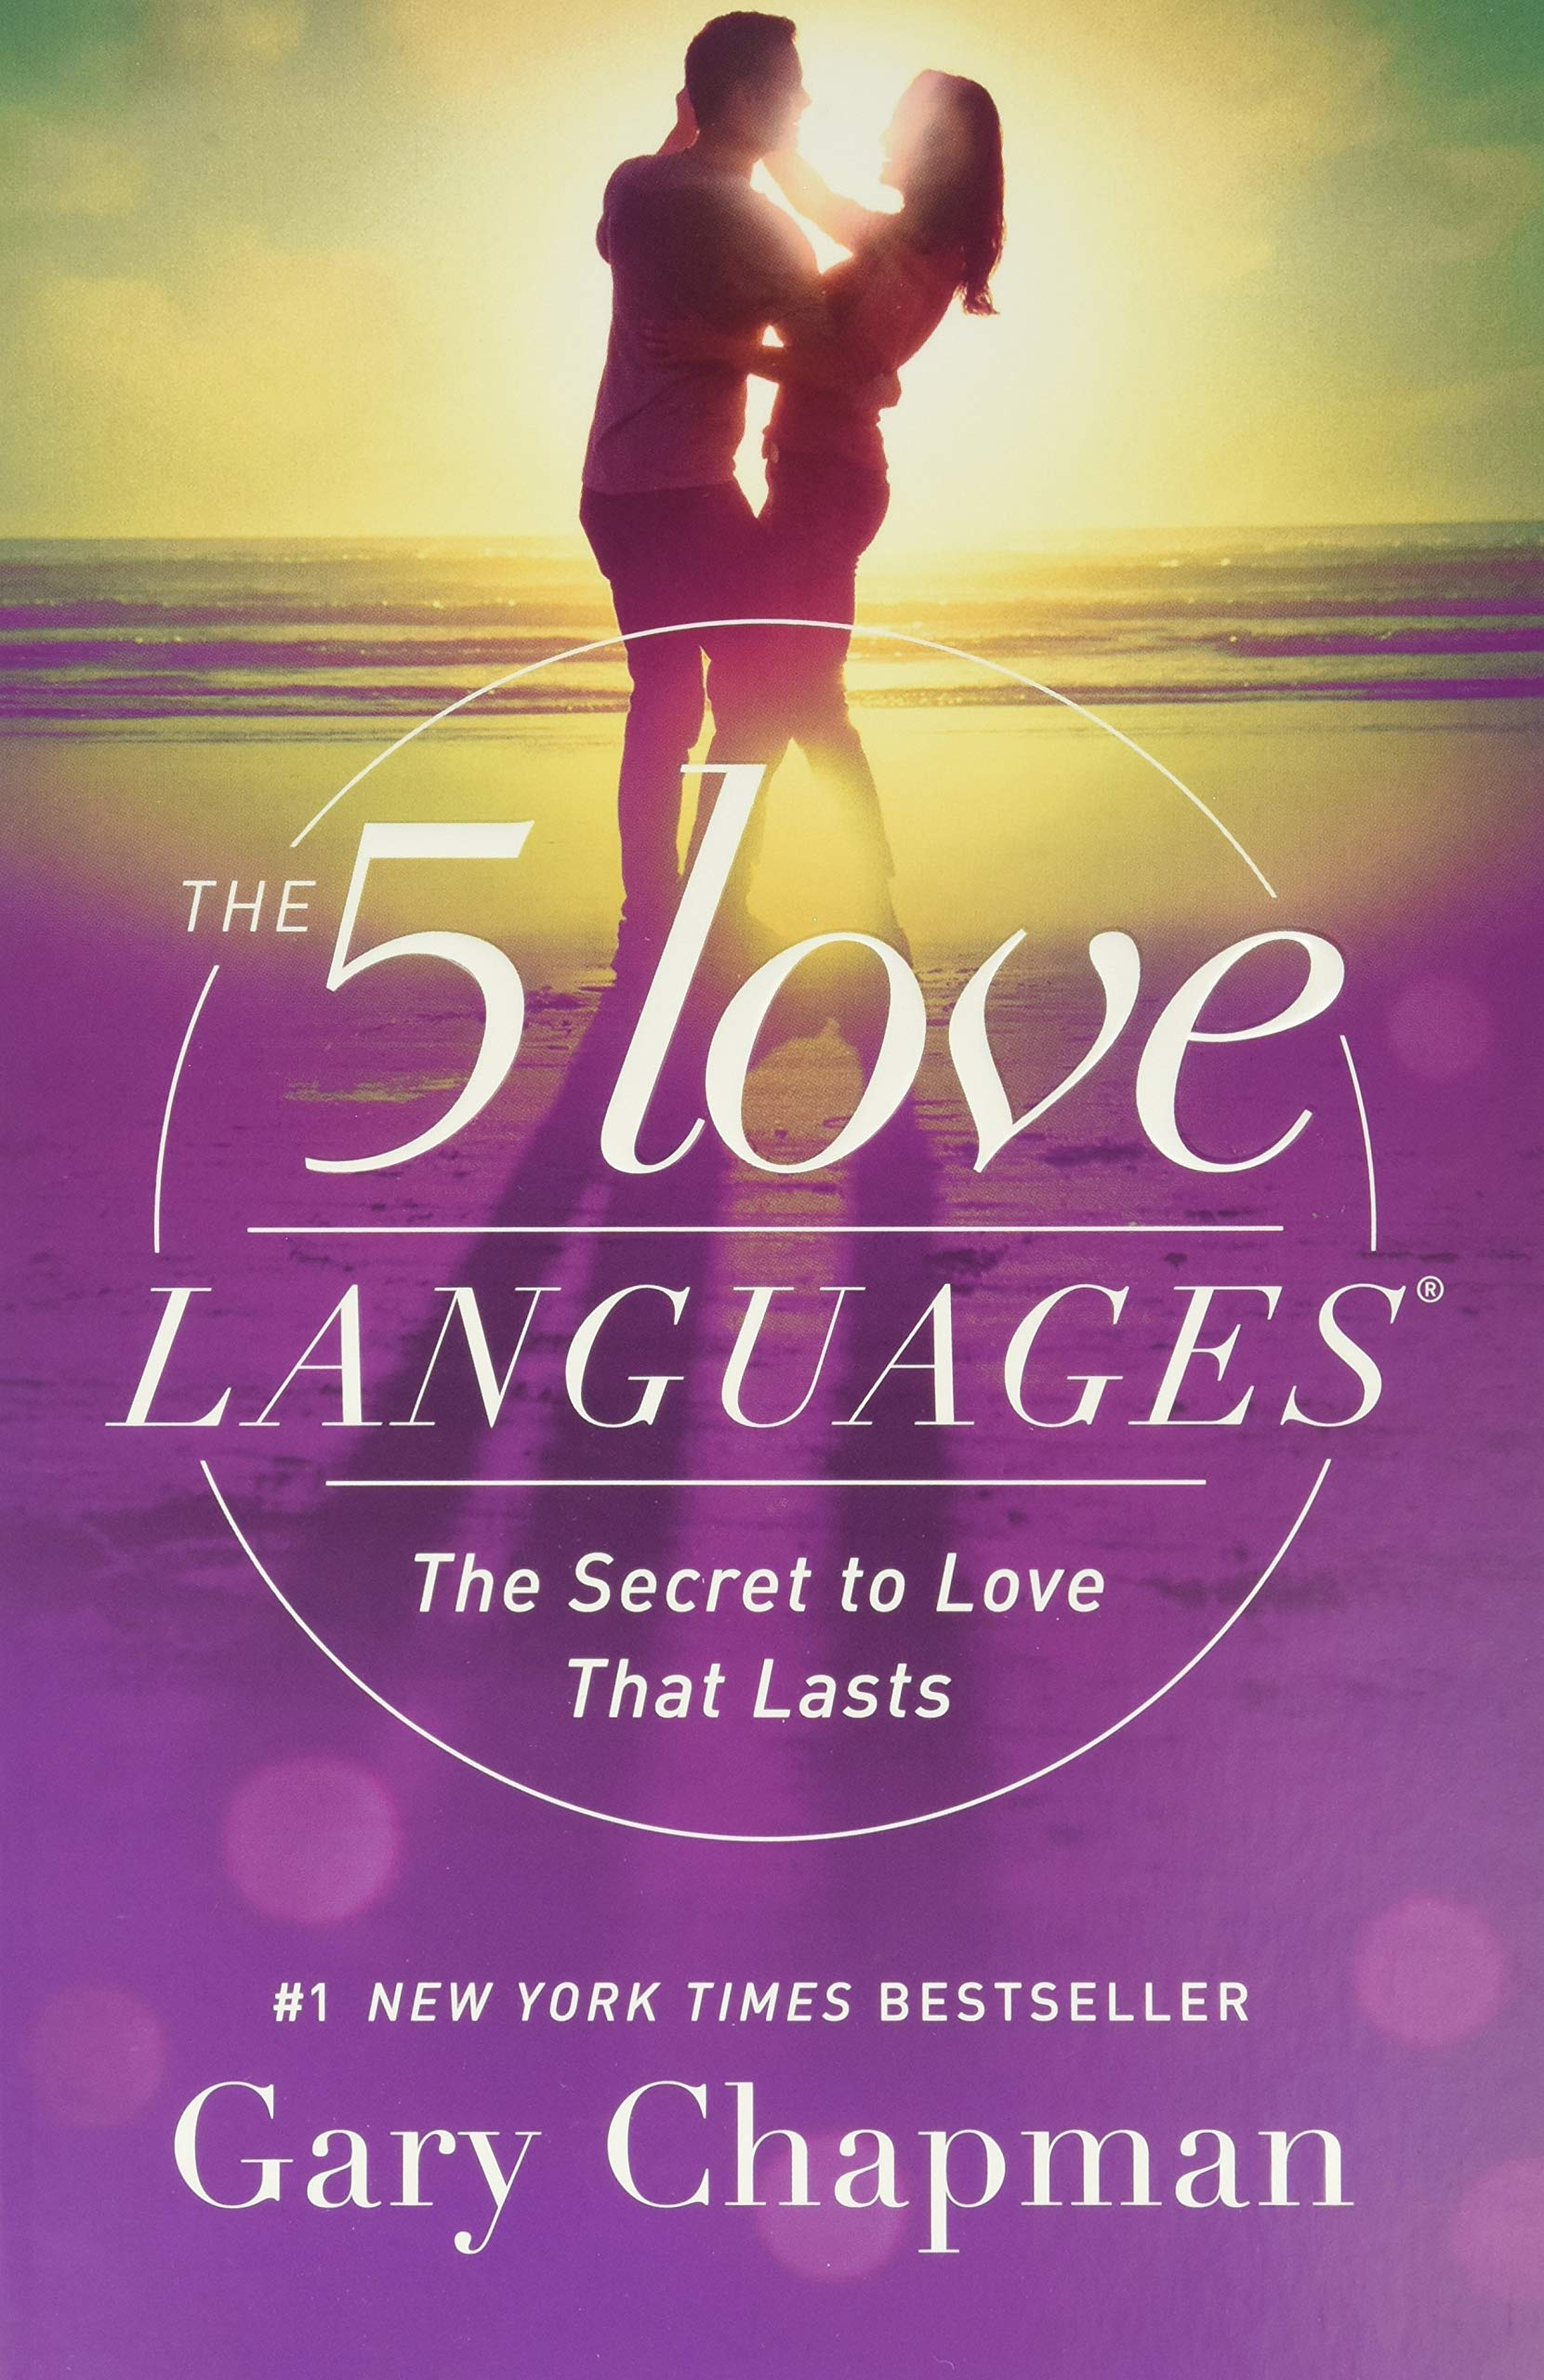 the 5 lover languages book cover